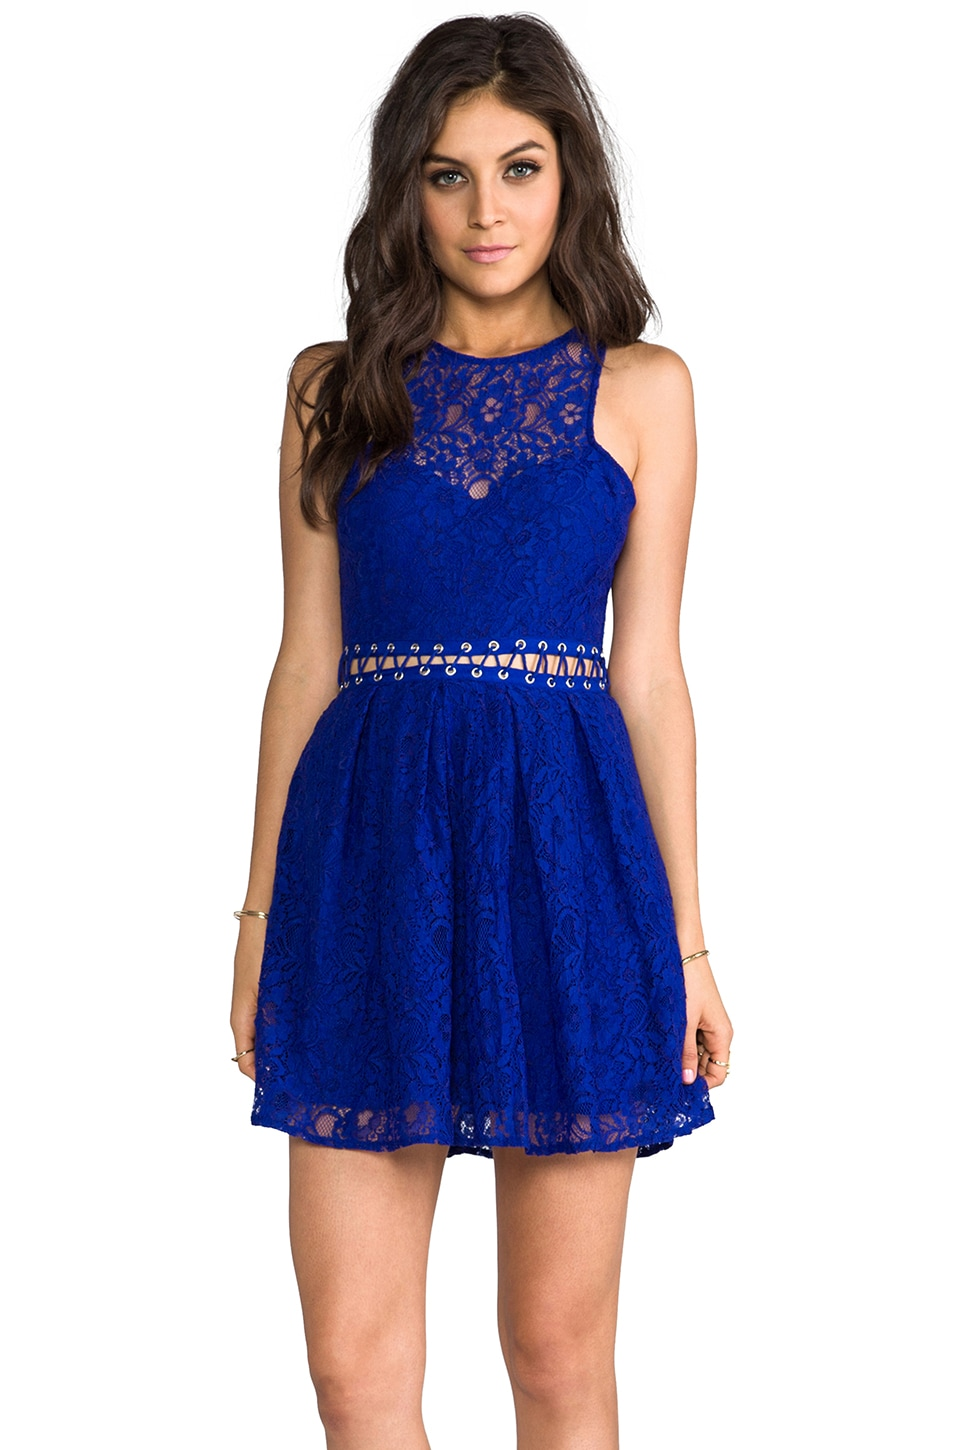 STYLESTALKER Bloc Party Dress in Electric Blue